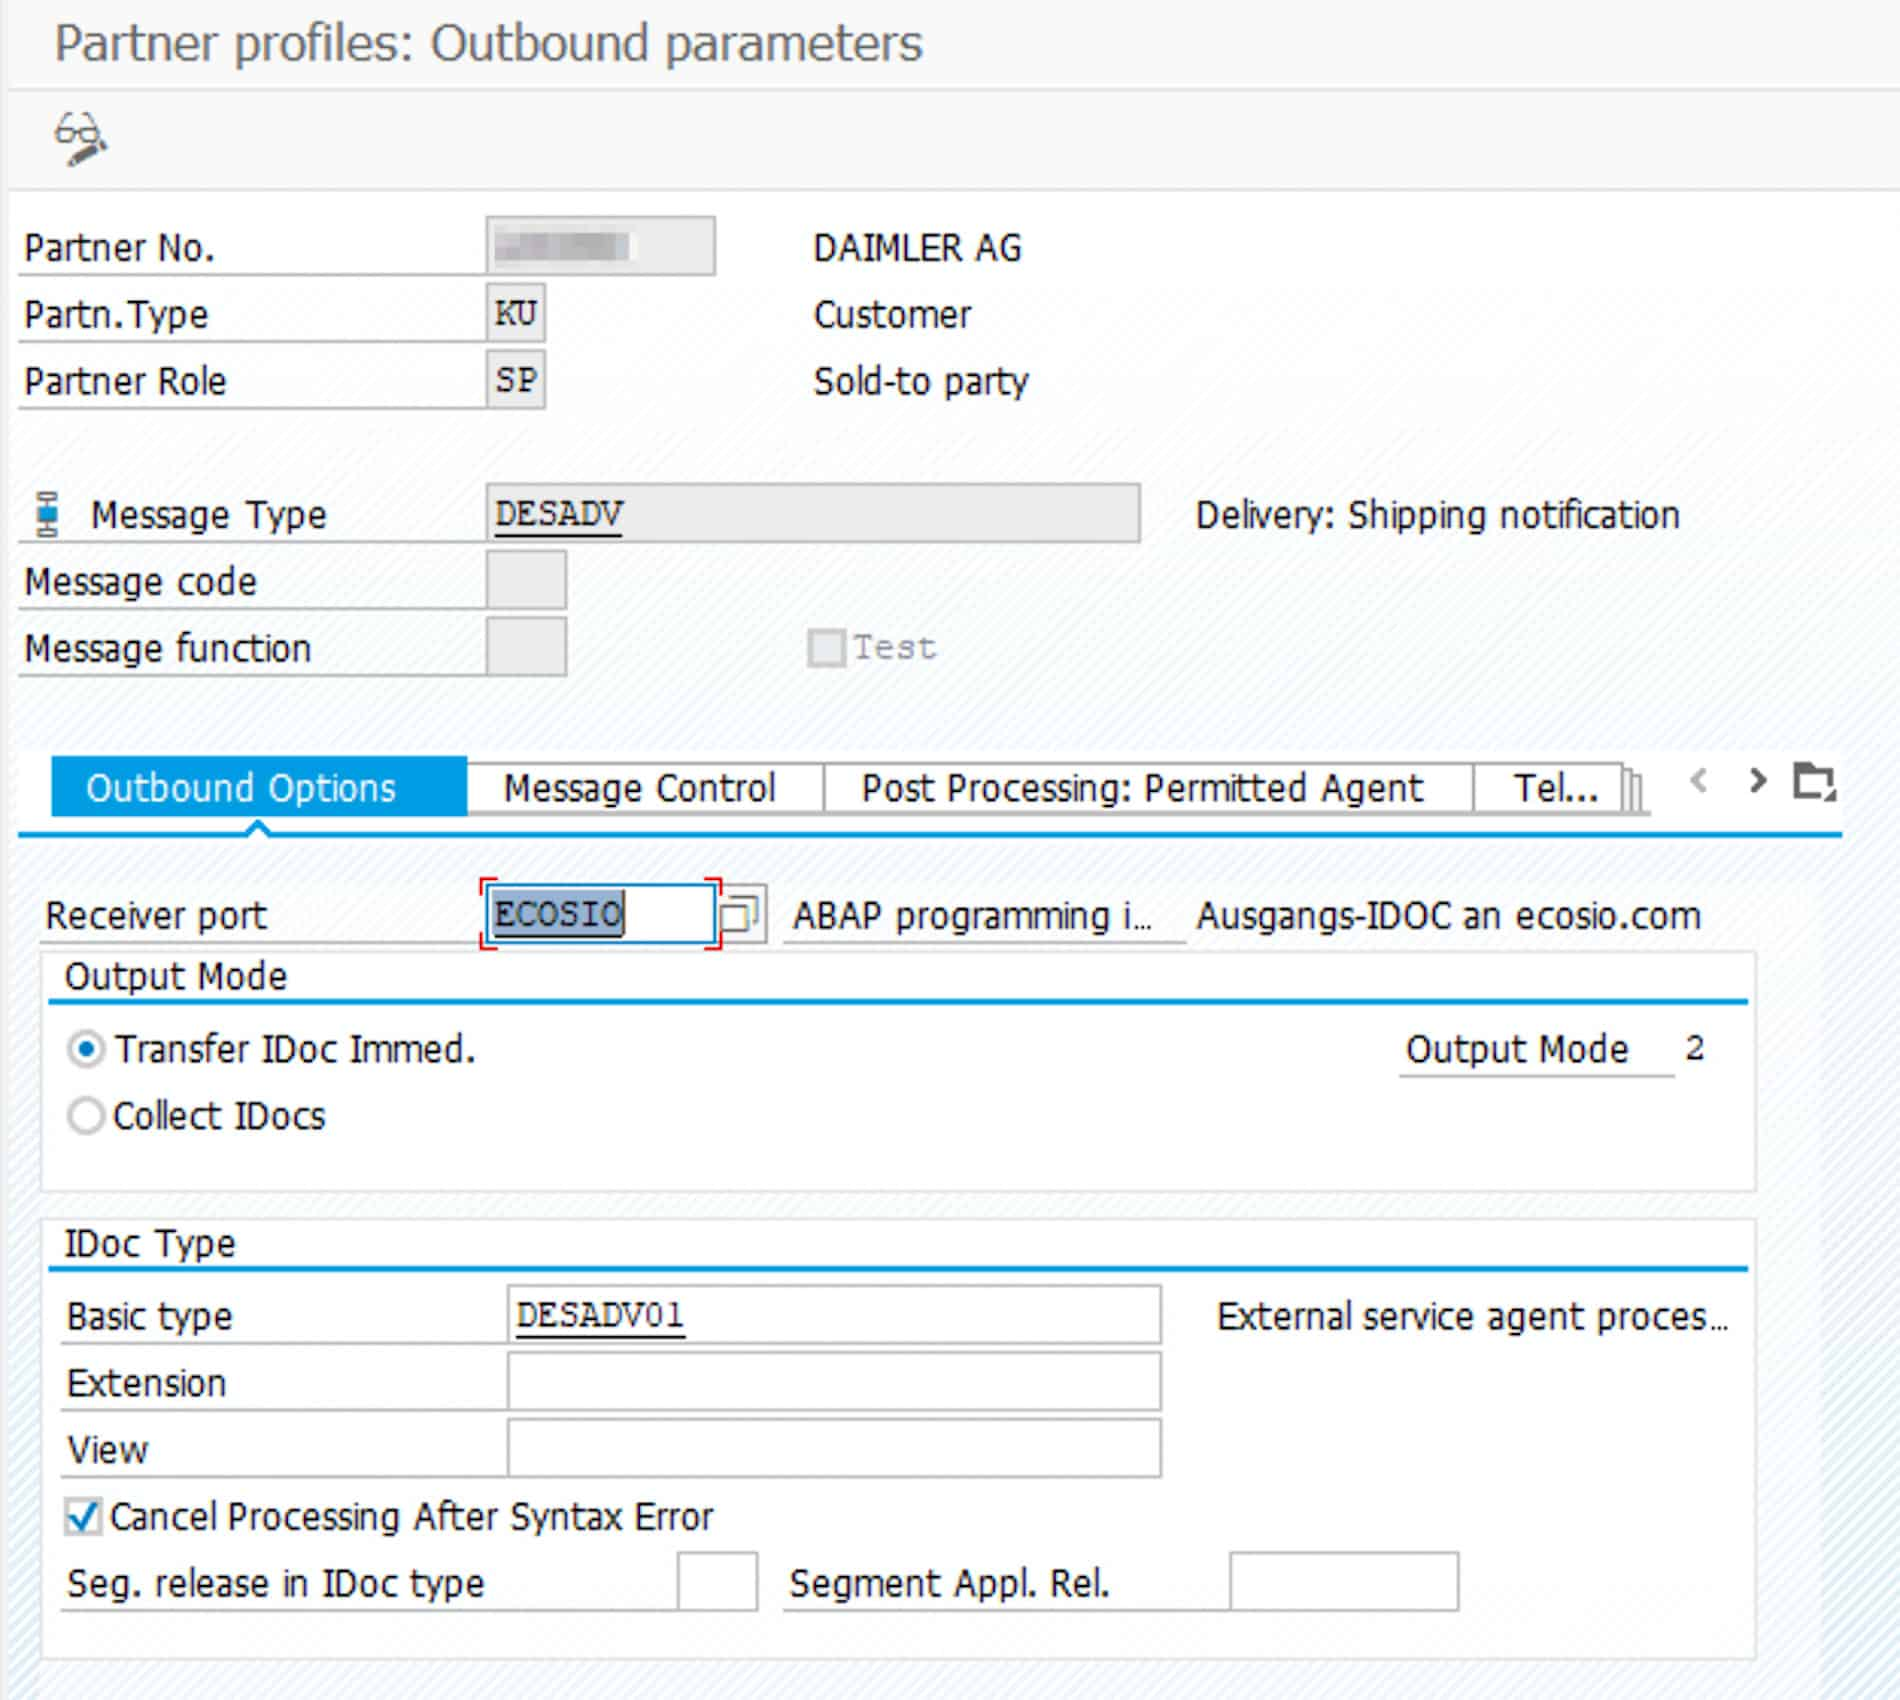 Example for an outbound partner agreement